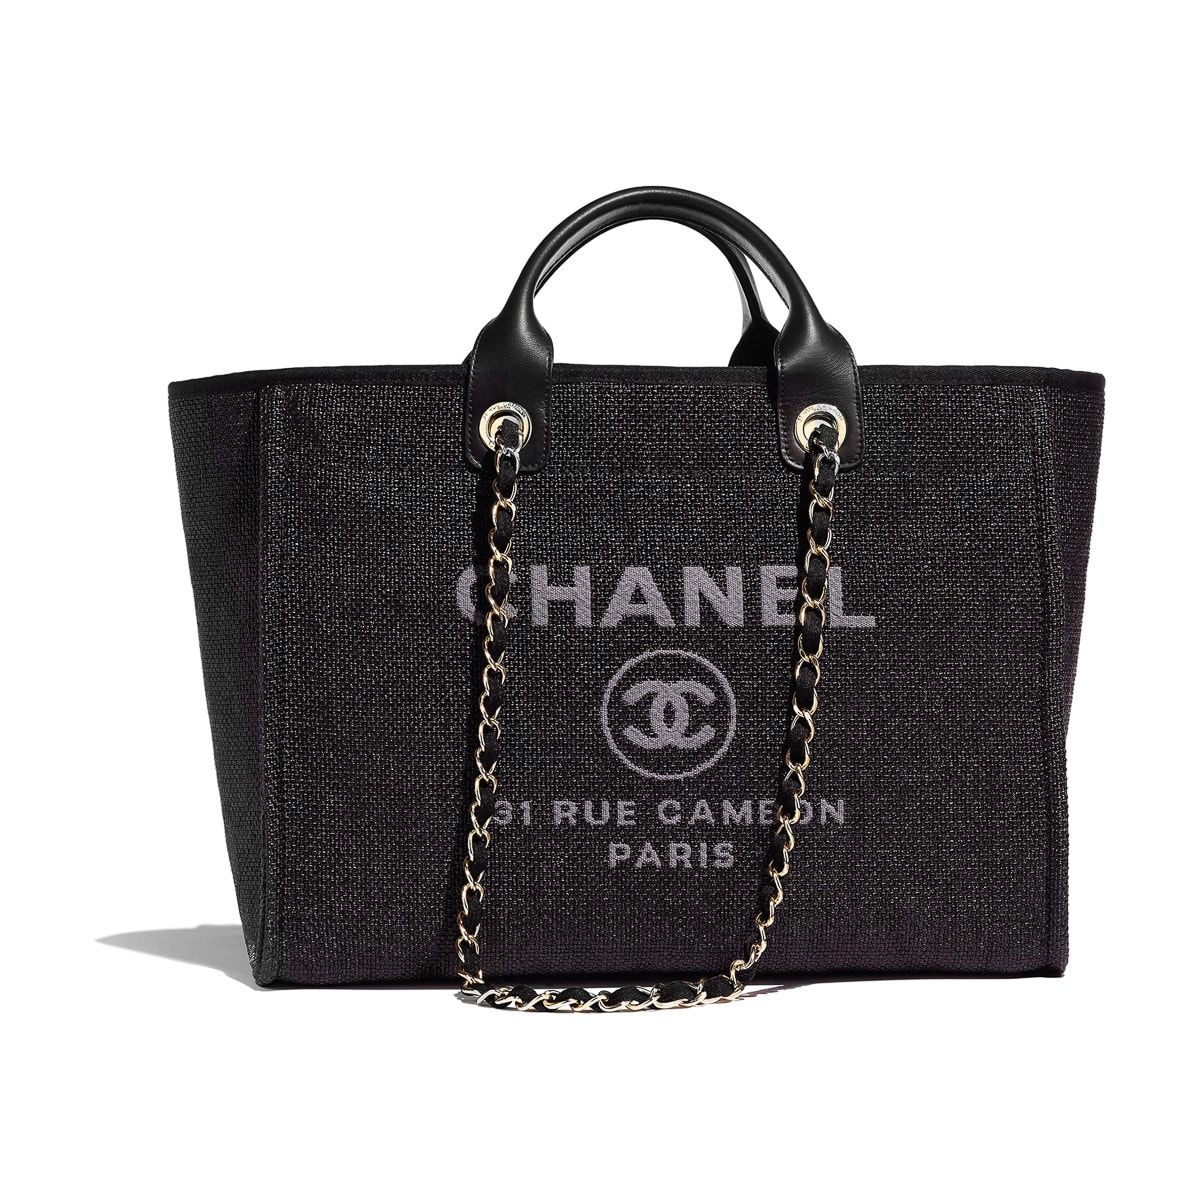 9f99042c4972 Chanel-Cruise-2019-16: CHANEL SHOPPING BAG (Deauville) $3,000 | BAGS ...